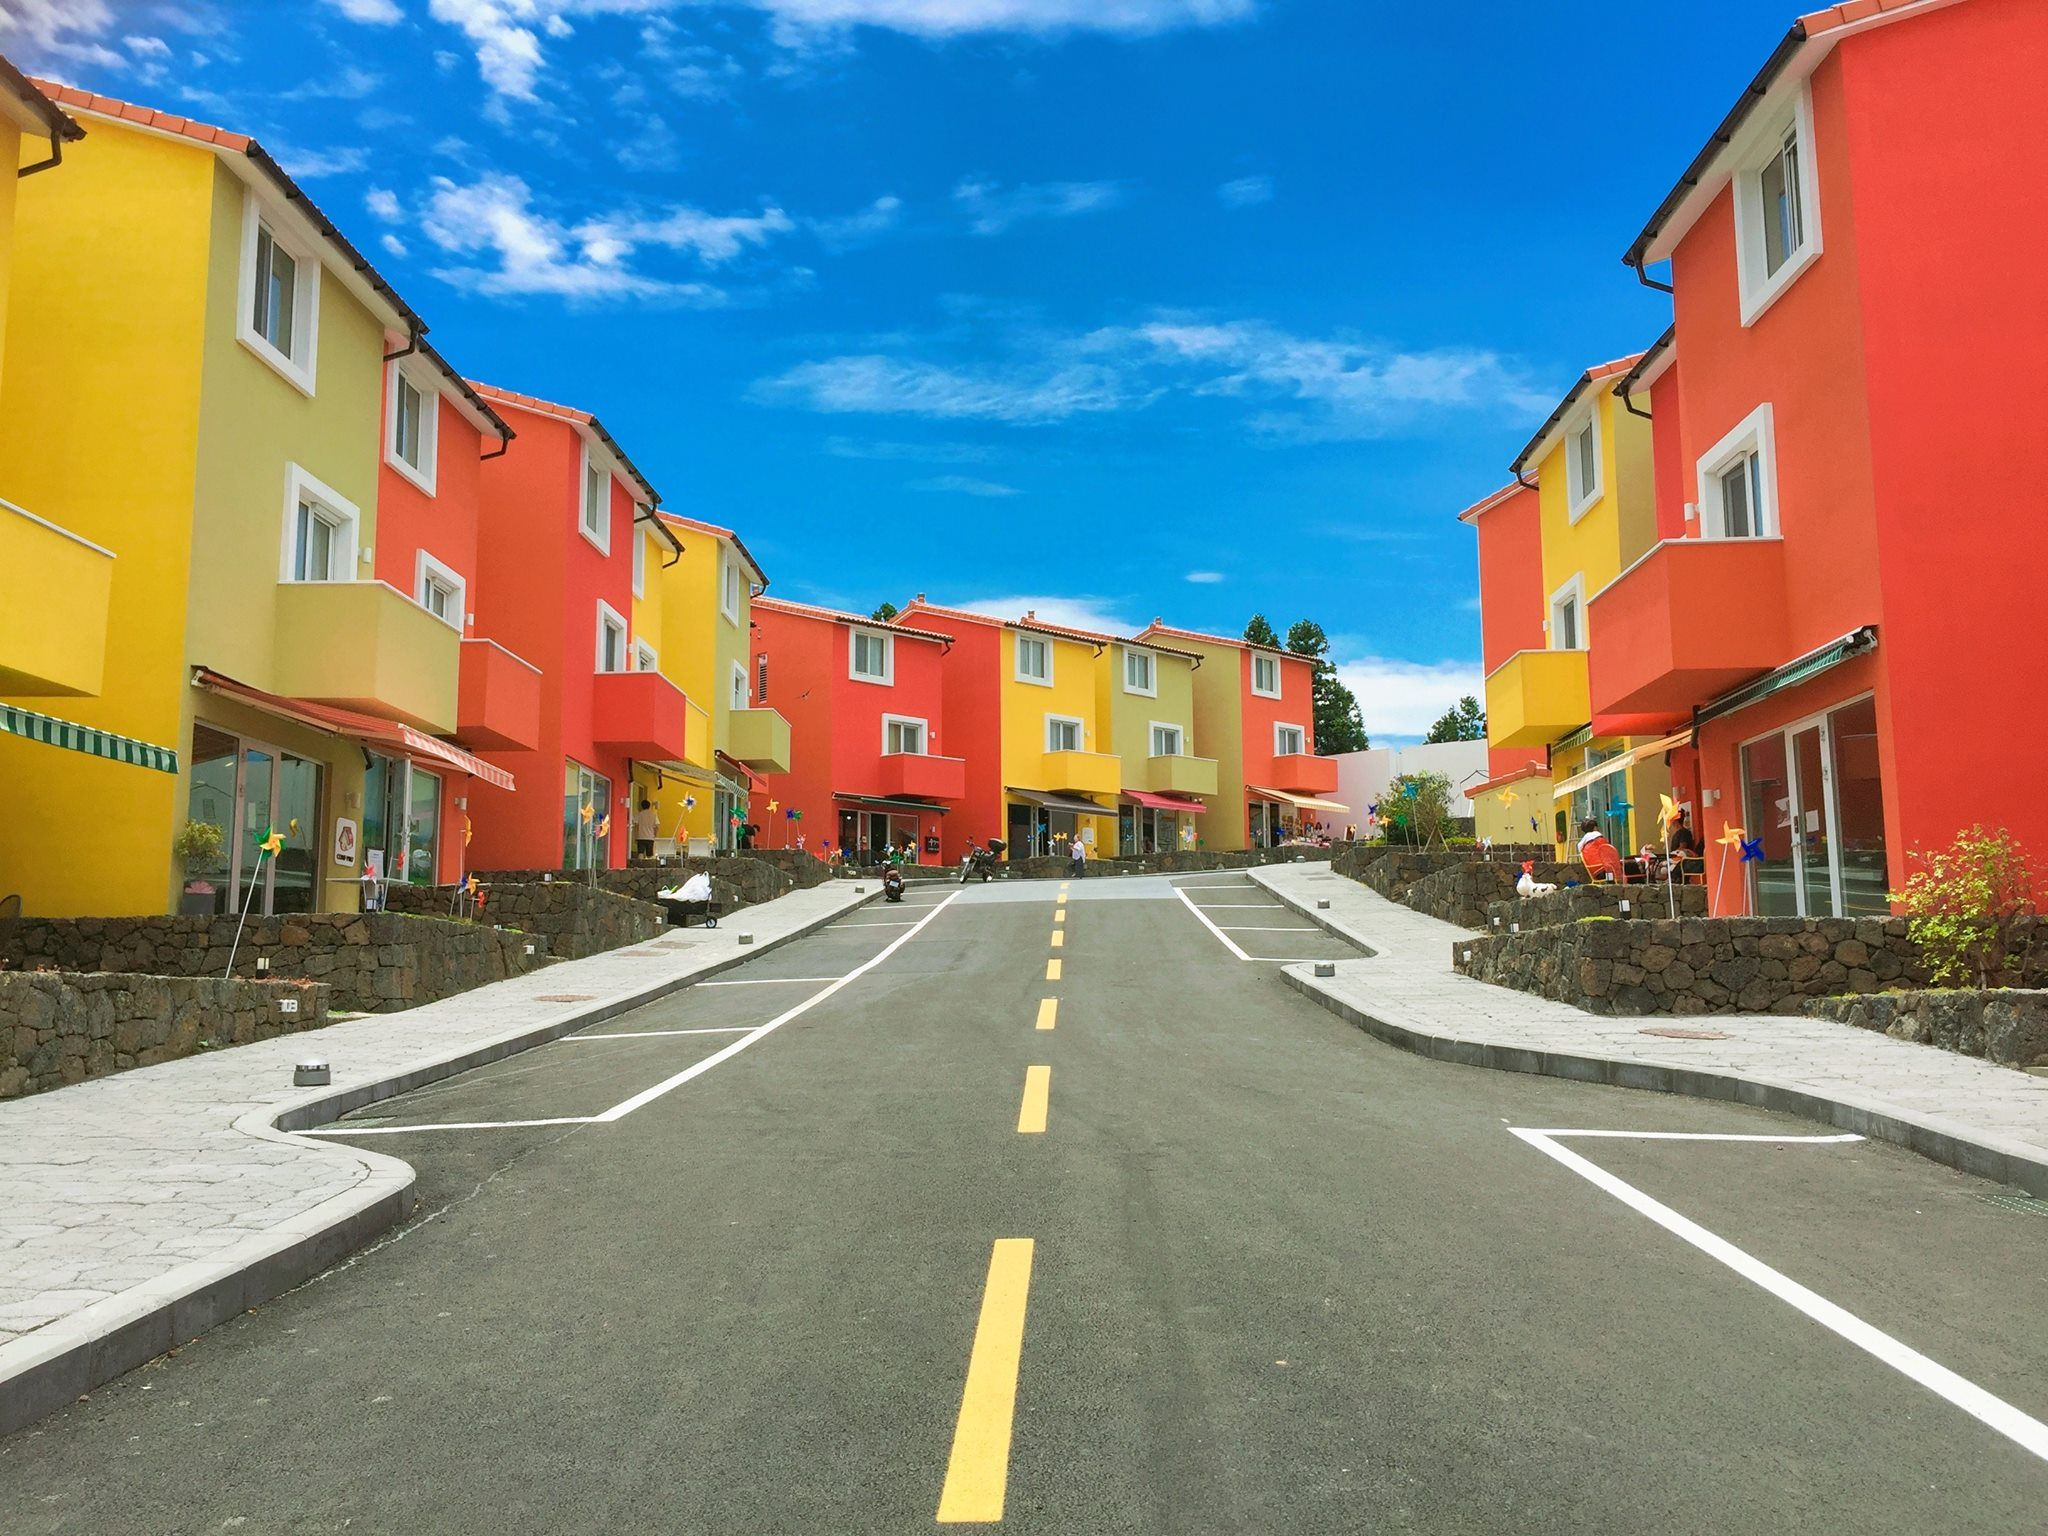 Dreaming of these technicolor homes nestled under fluffy